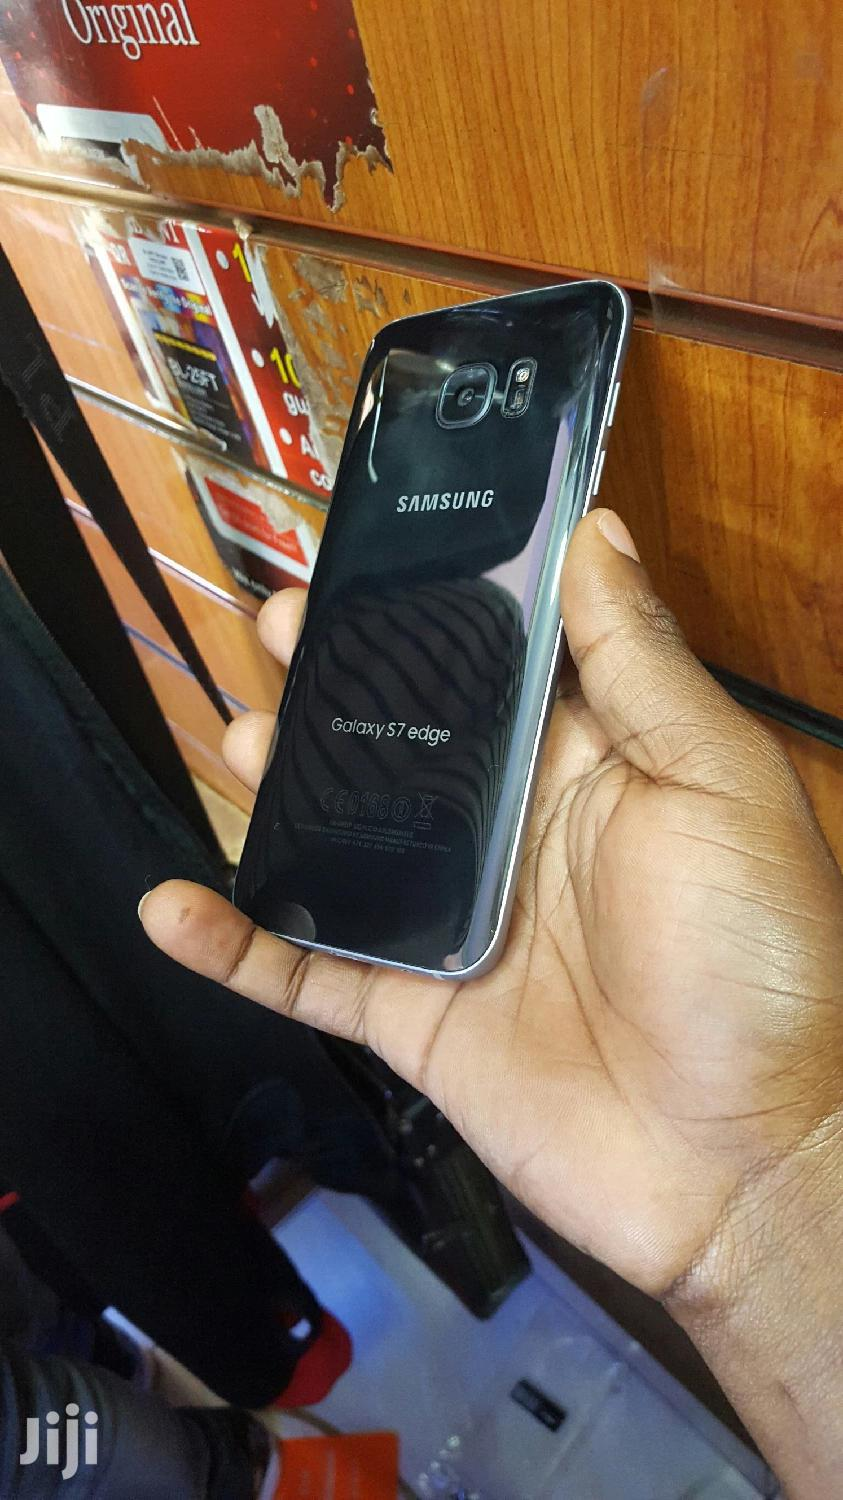 Archive: Samsung Galaxy S7 edge 32 GB